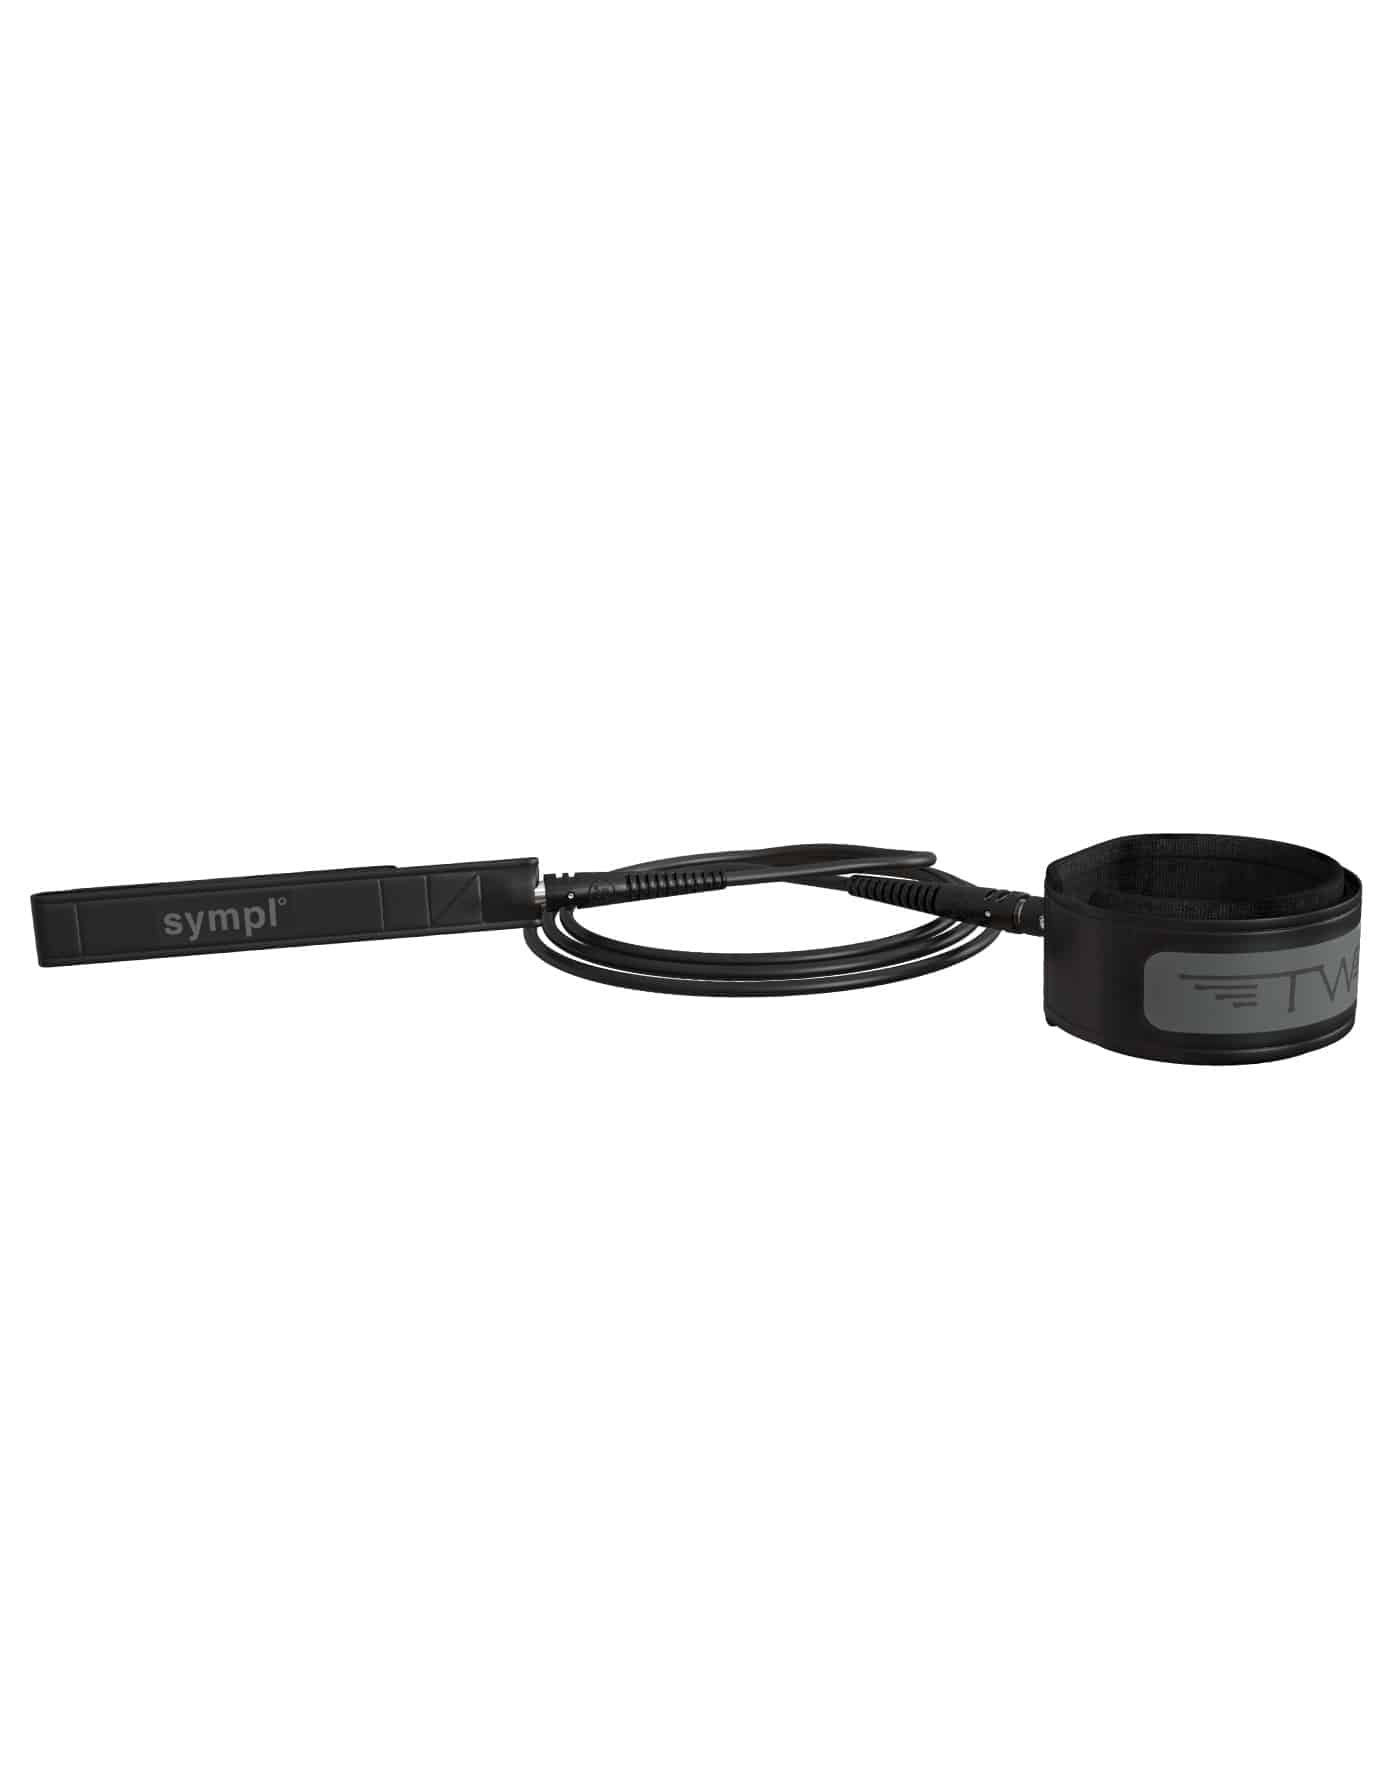 Sympl Tyler Warren Re-Leash - 7ft - Black